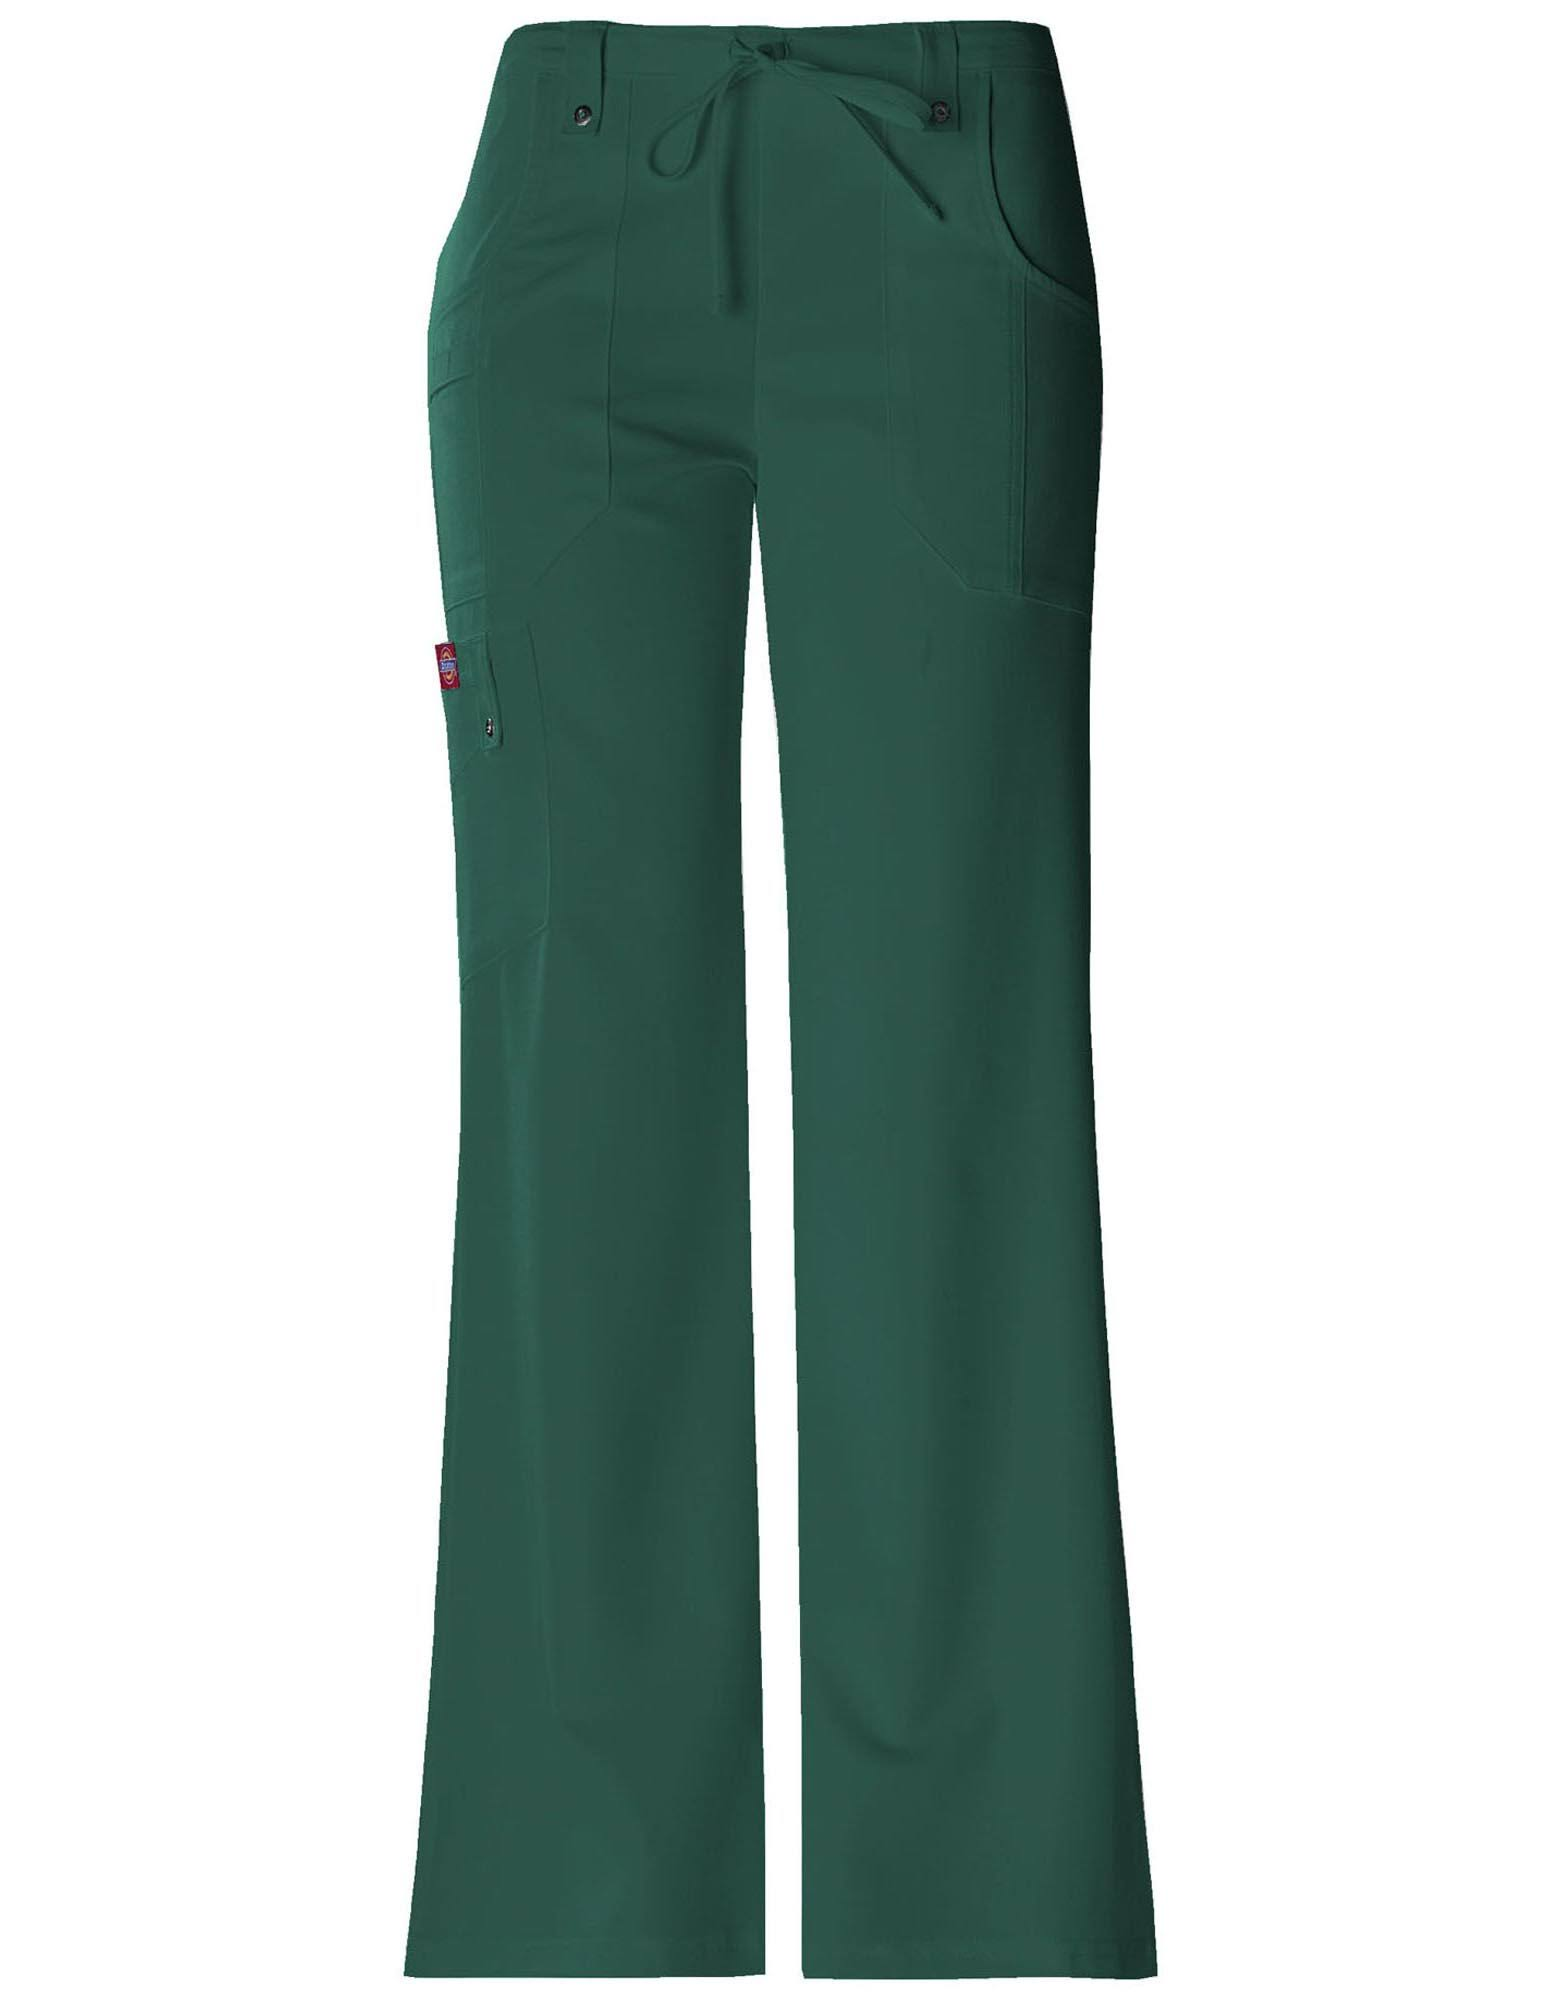 Dickies Women's Xtreme Stretch Tall Drawstring Scrub Pant - XS - Hunter